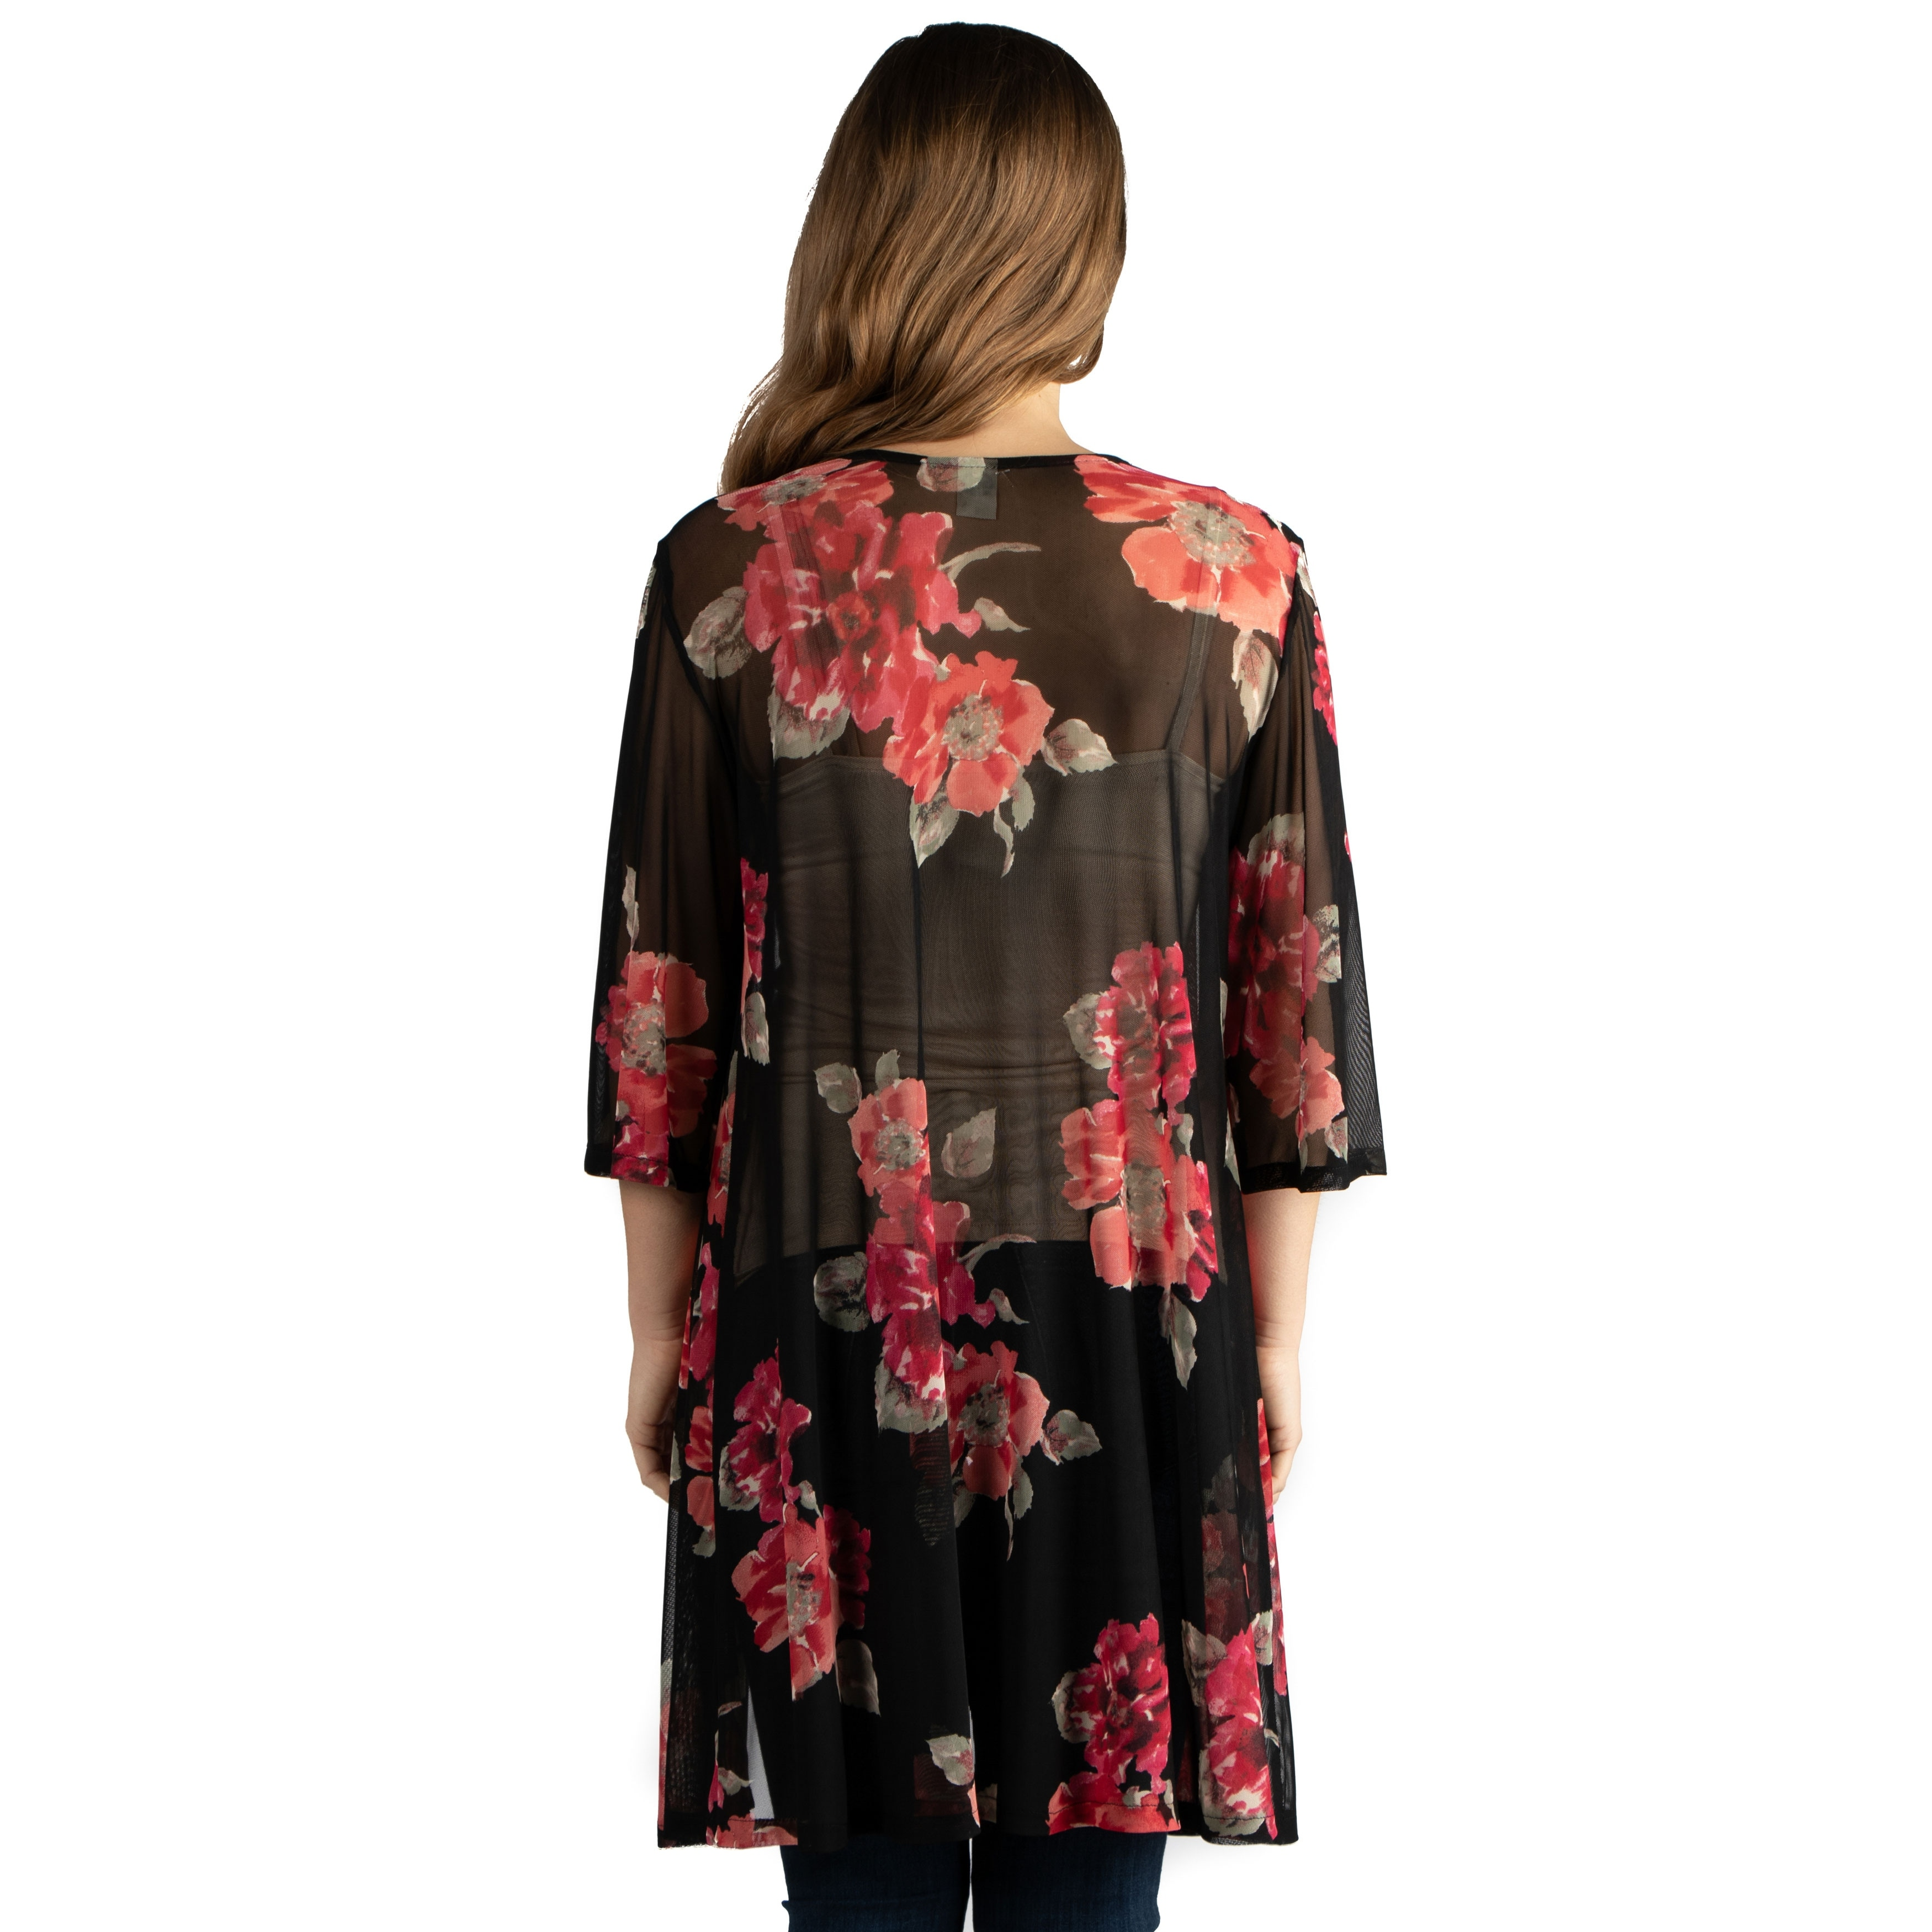 ac1d2fb91c Shop 24seven Comfort Apparel Knee Length White Floral Print Maternity Kimono  Cardigan - Free Shipping On Orders Over  45 - Overstock - 28032285